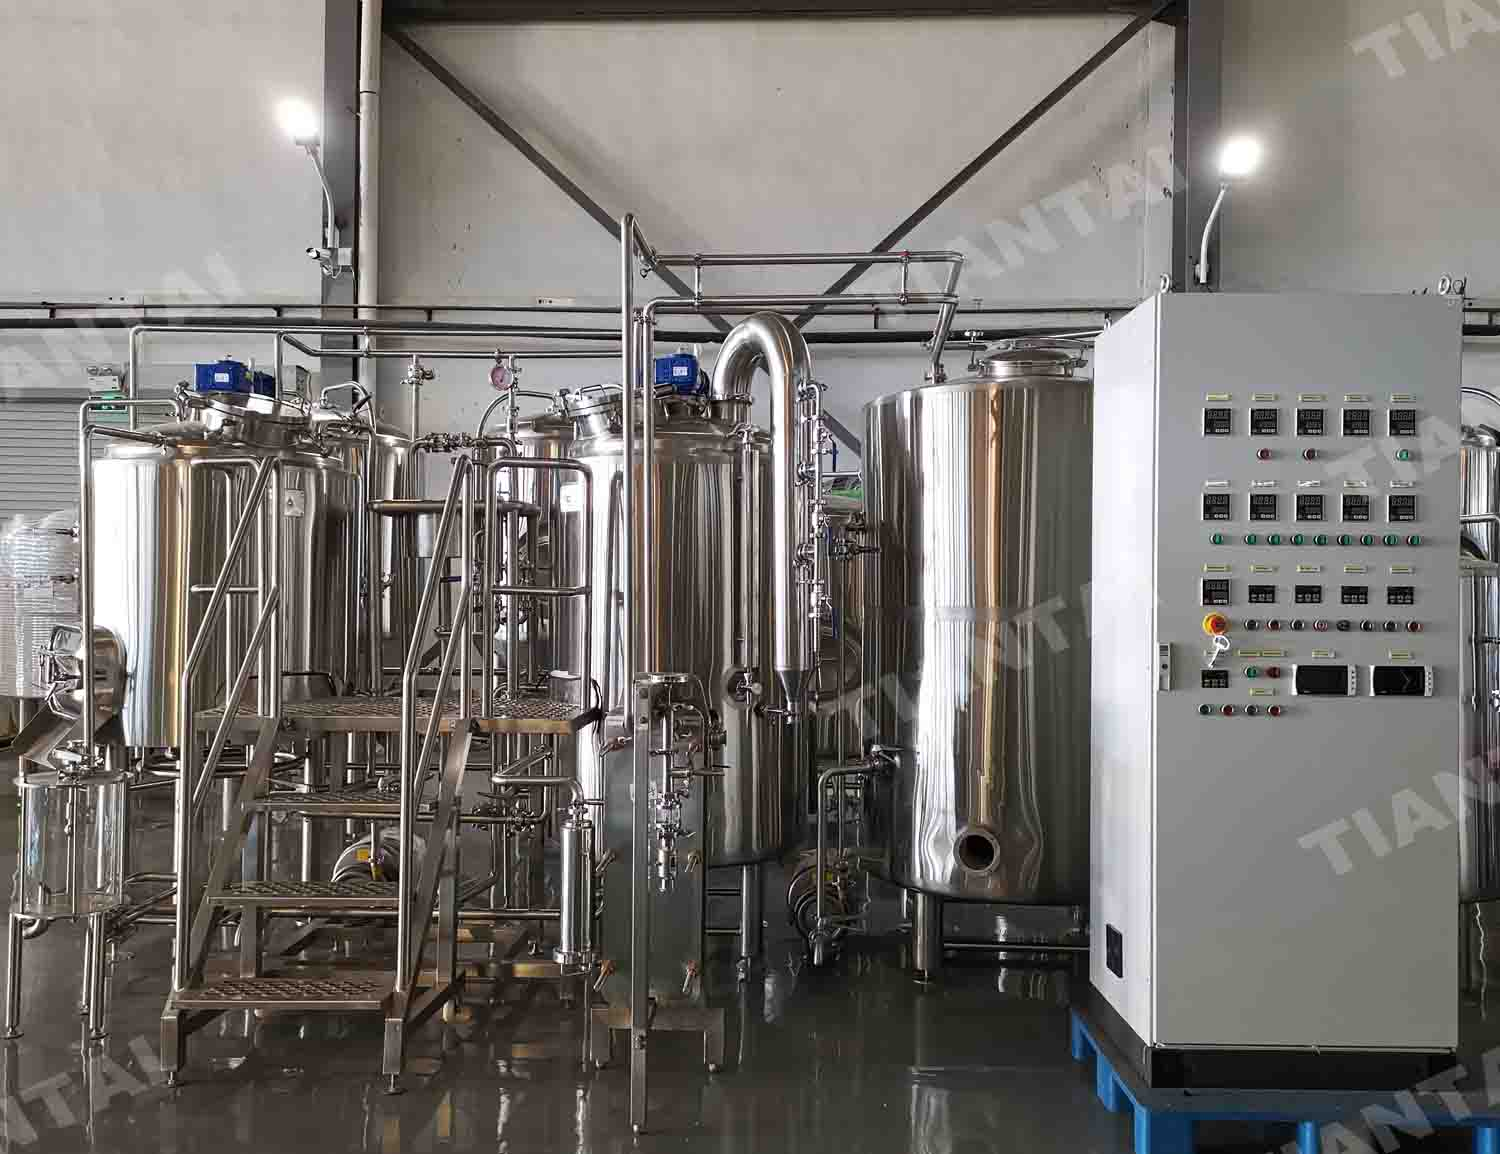 500L direct fire heating brewery installed in Australia